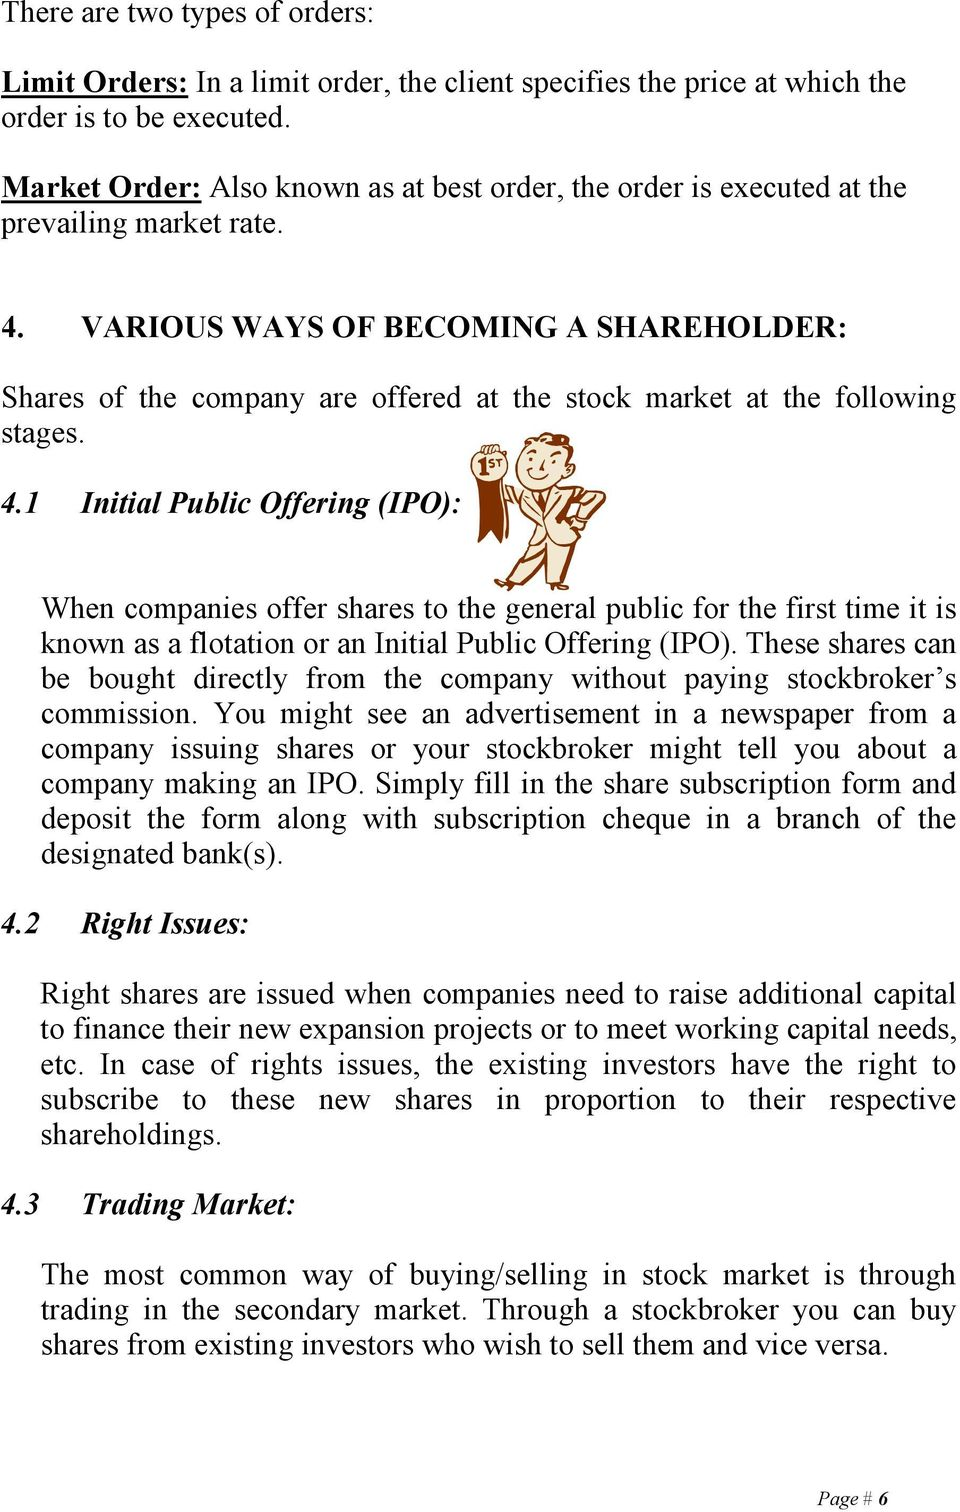 VARIOUS WAYS OF BECOMING A SHAREHOLDER: Shares of the company are offered at the stock market at the following stages. 4.